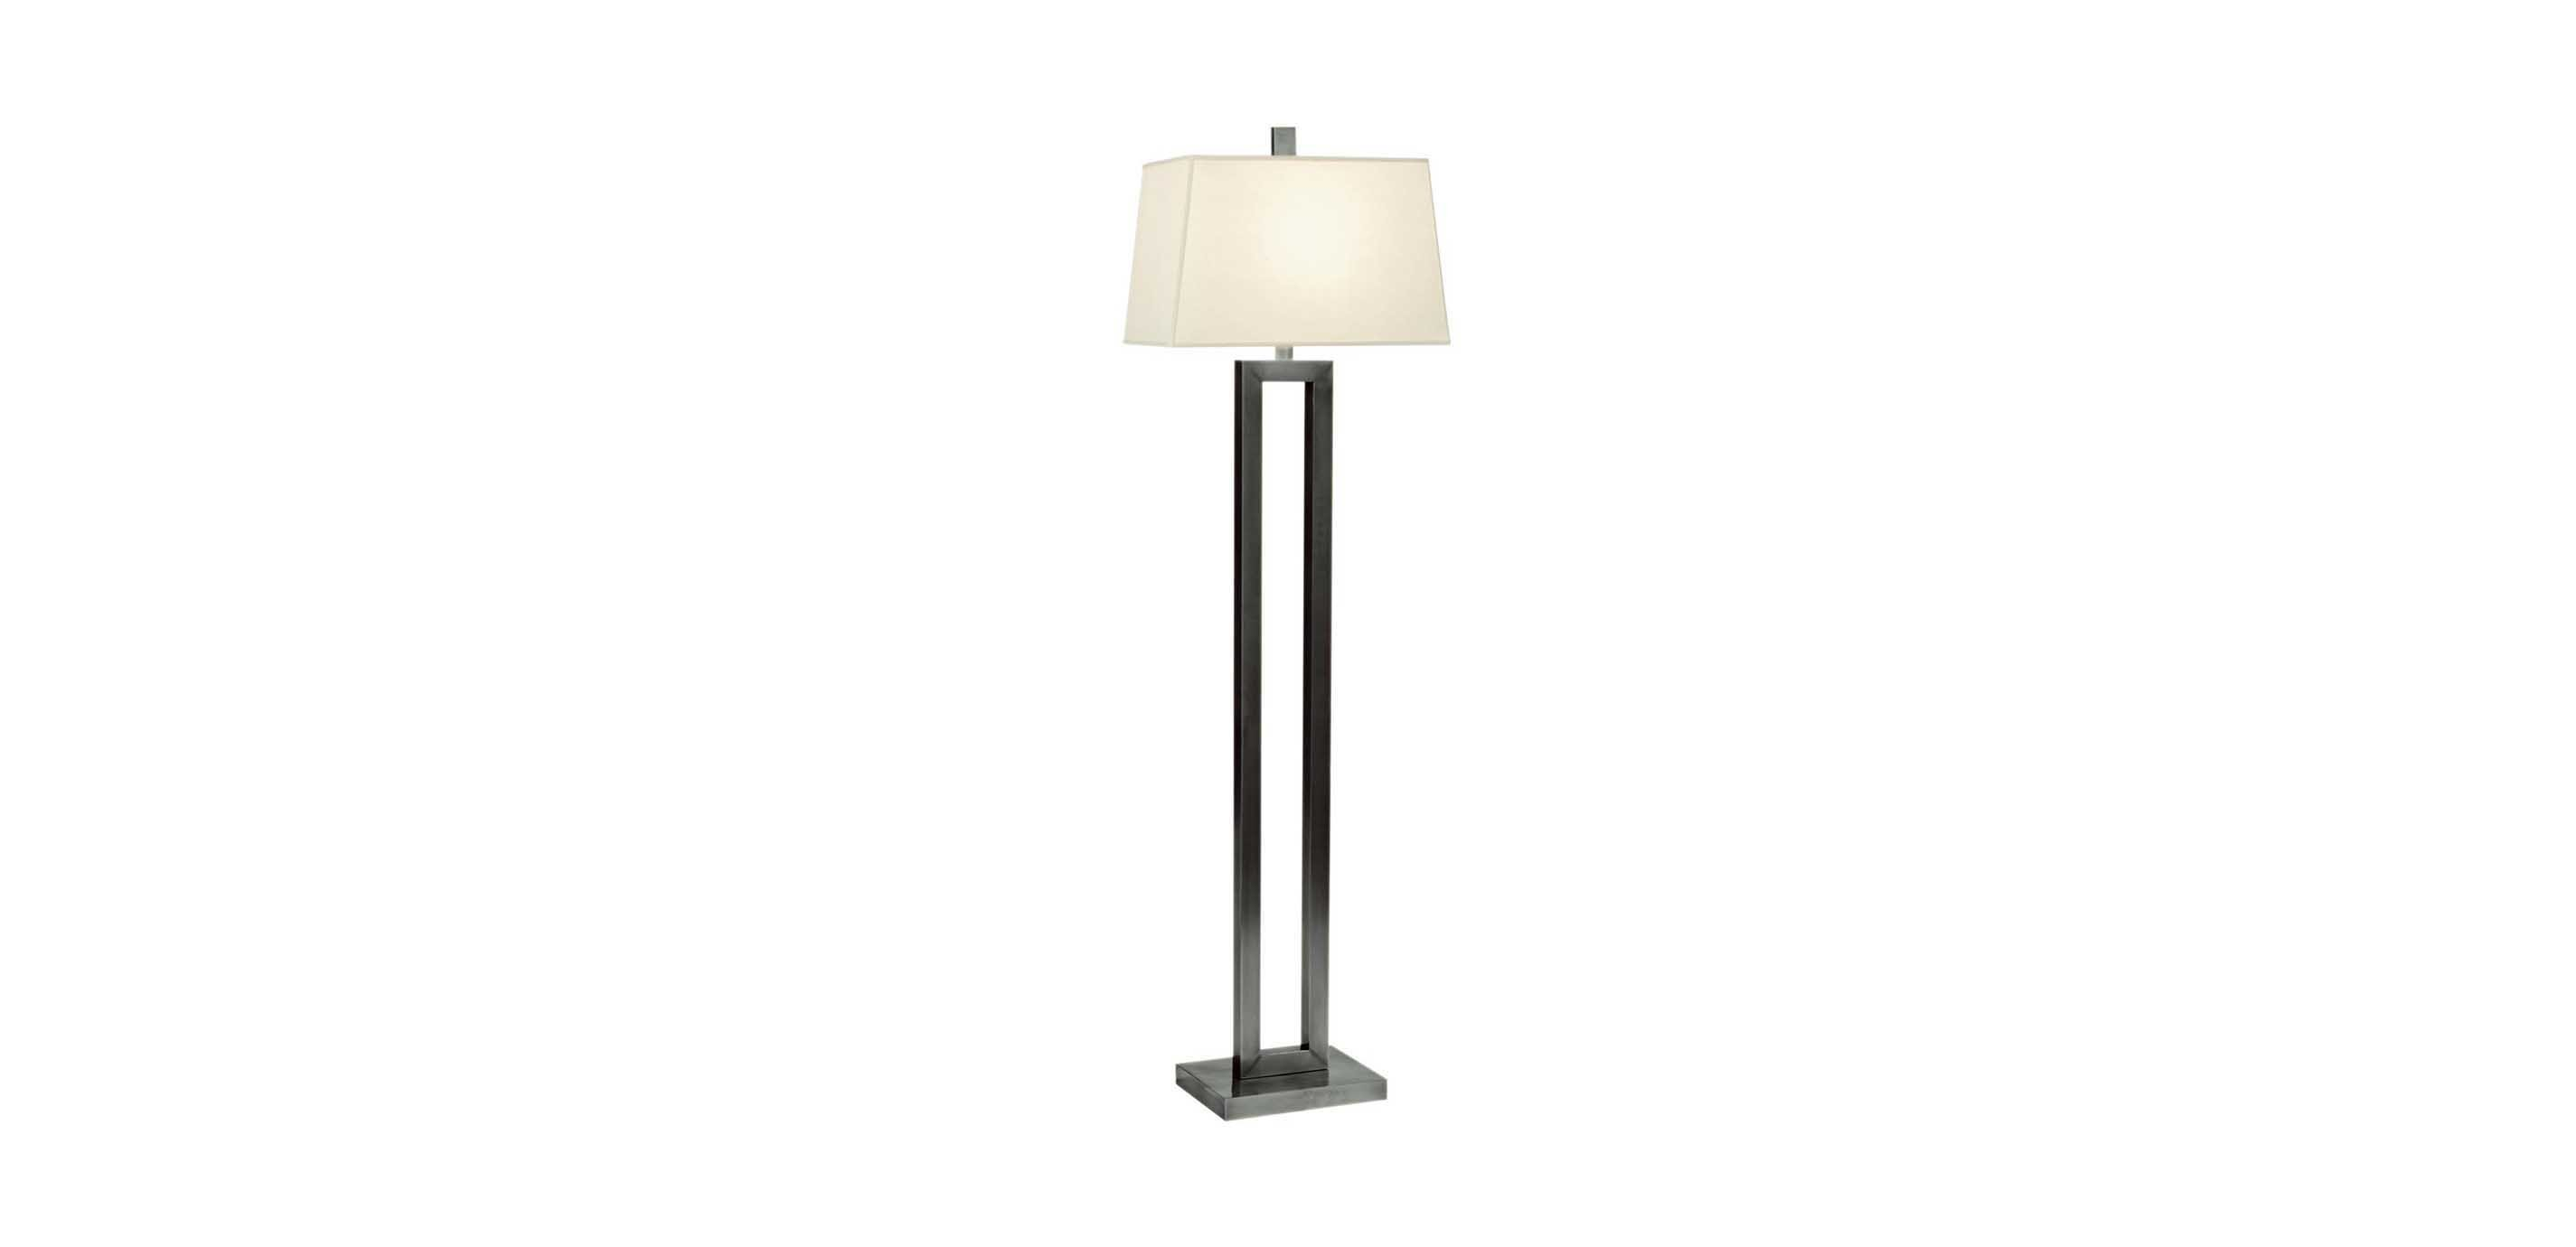 Stafford bronze floor lamp floor lamps ethan allen images null mozeypictures Choice Image